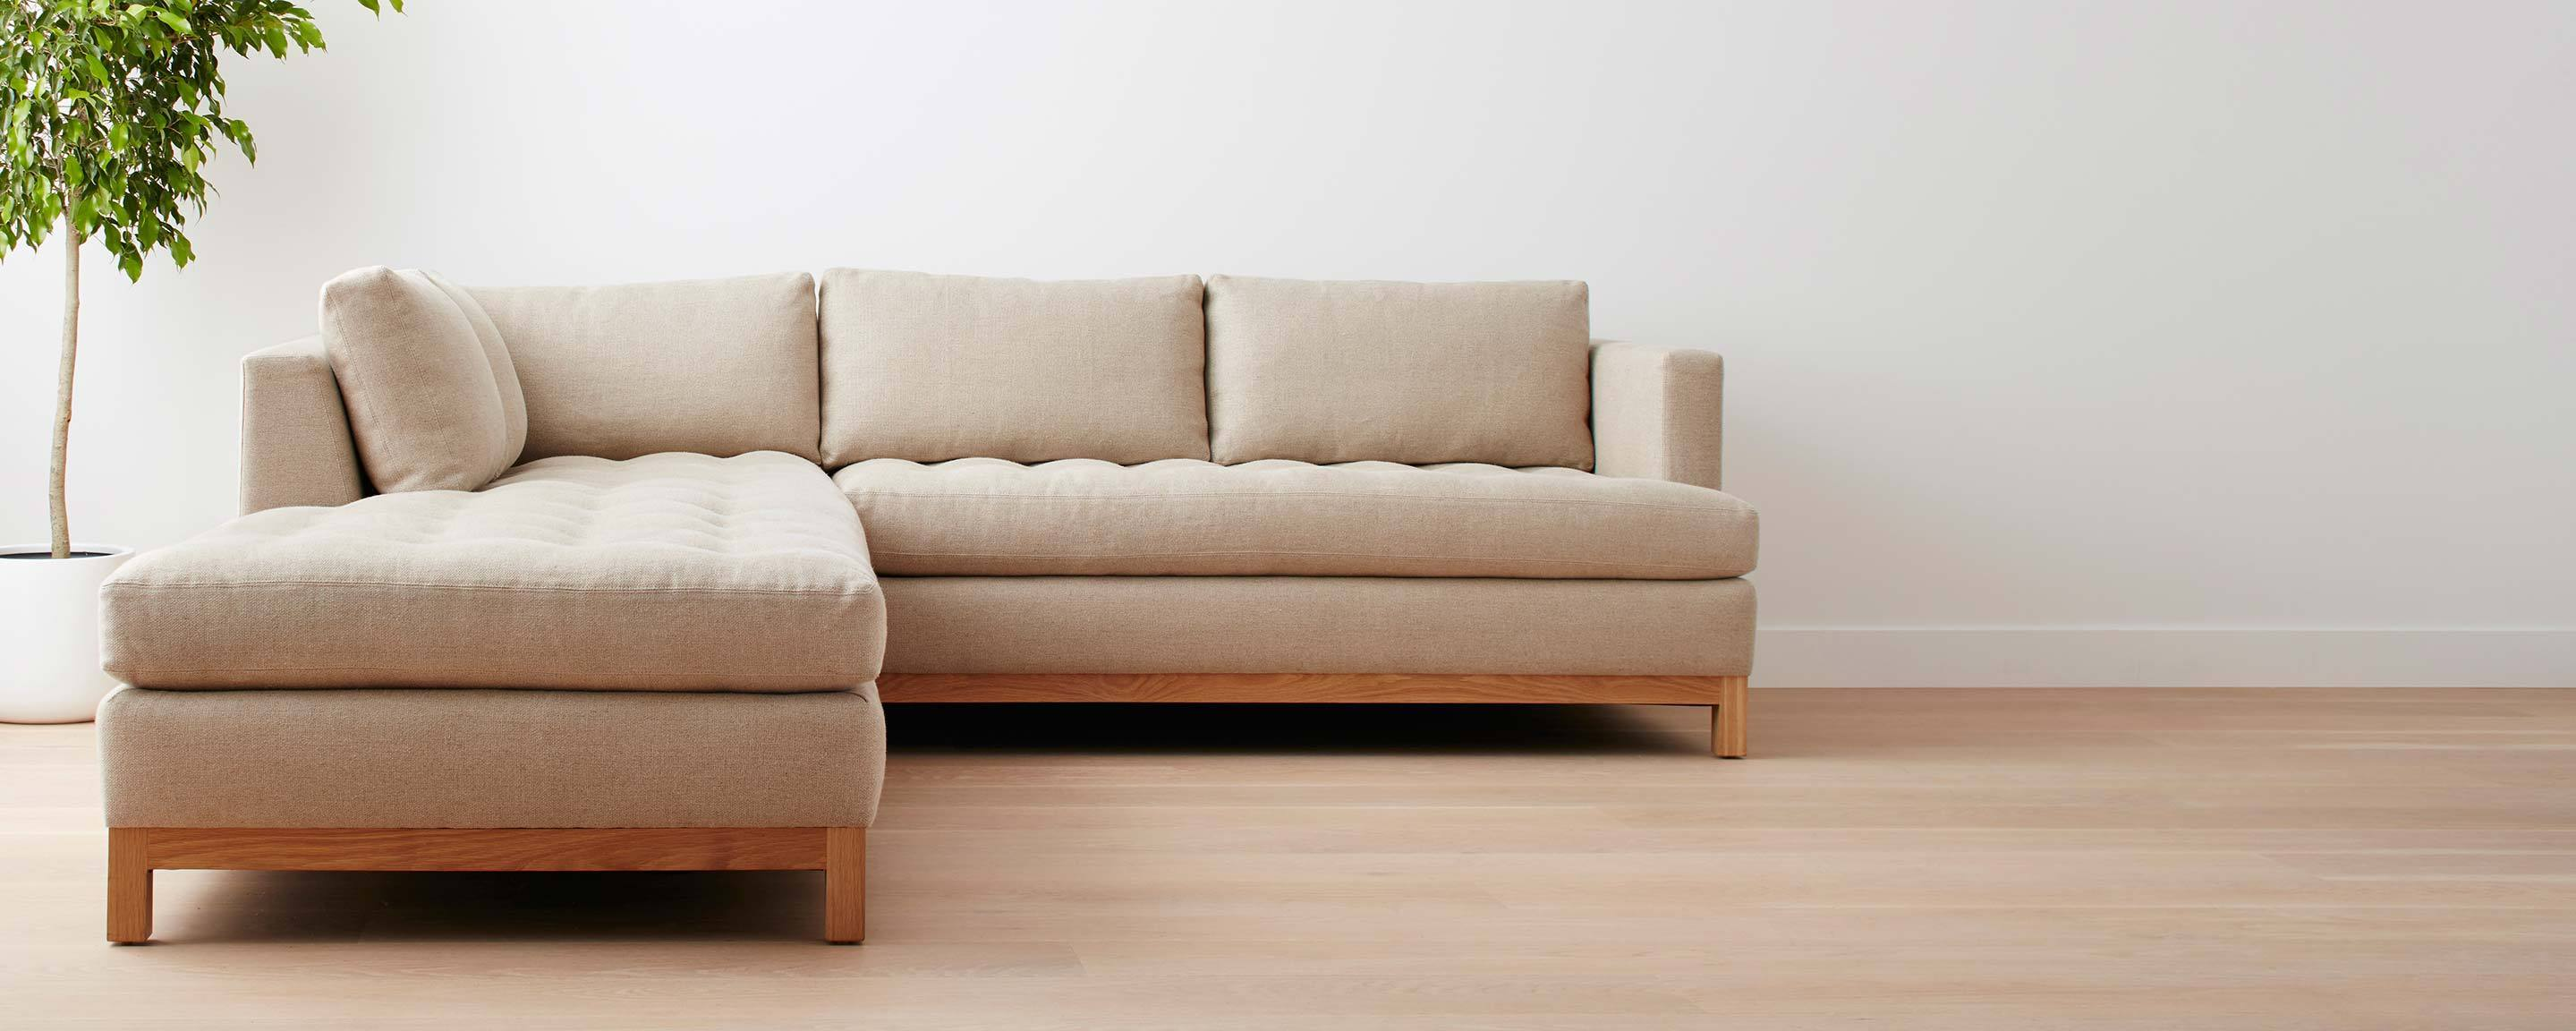 the homenature del mar sofa / sectional